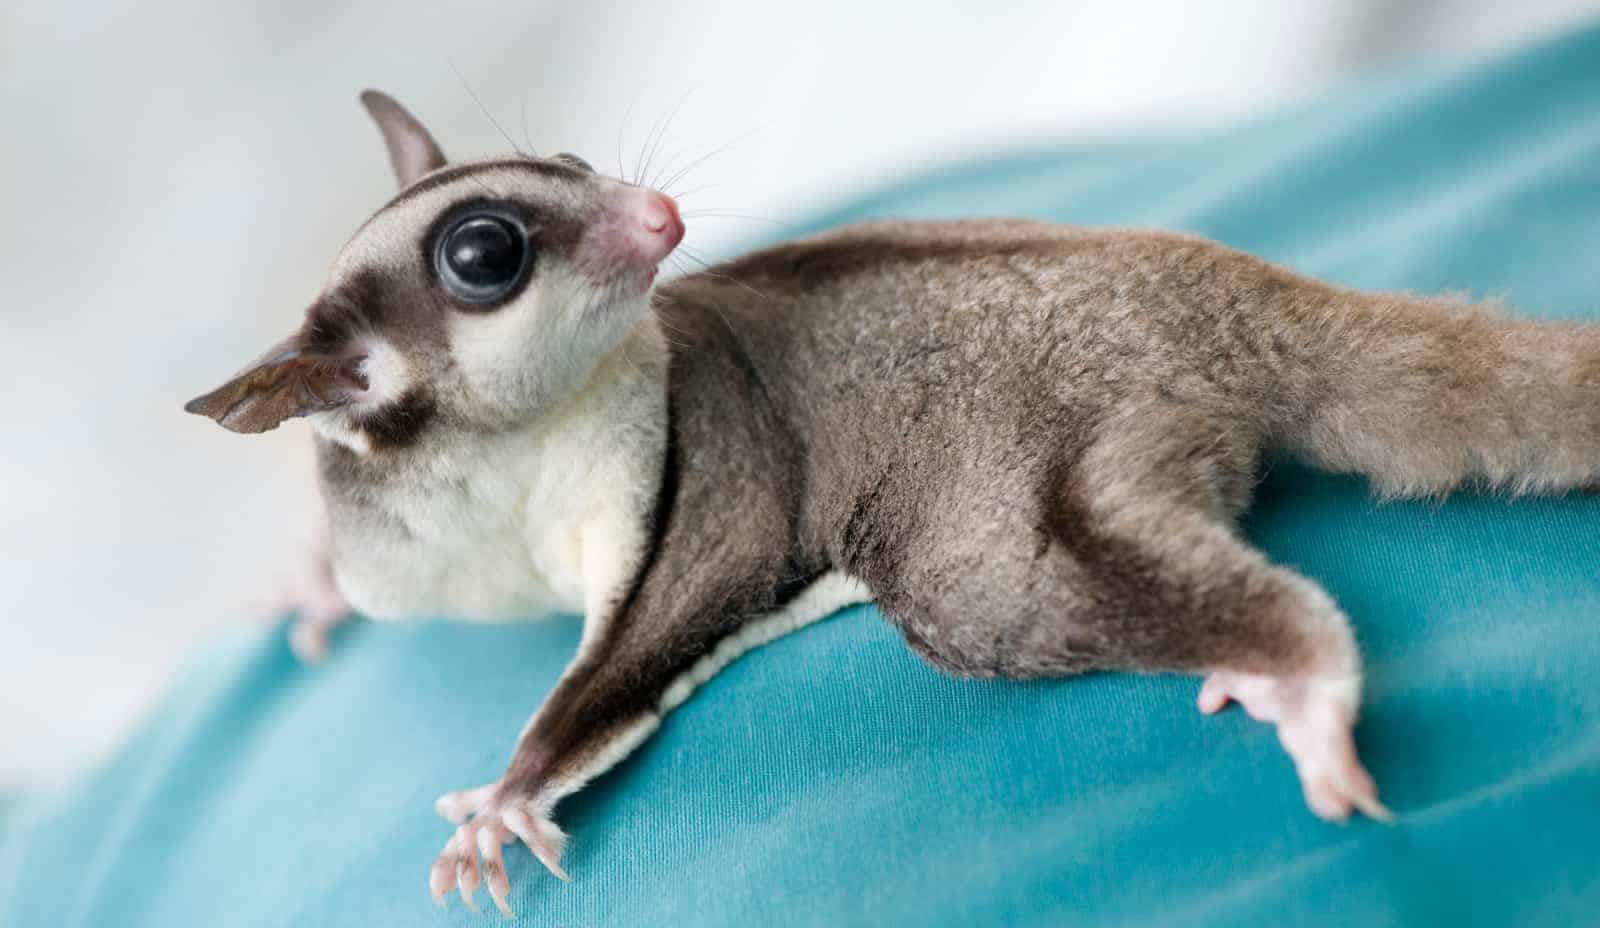 Looking for some cute sugar glider names? Well, we've come up with 100 of them just for you, with 50 each for male and female gliders. Check them out!